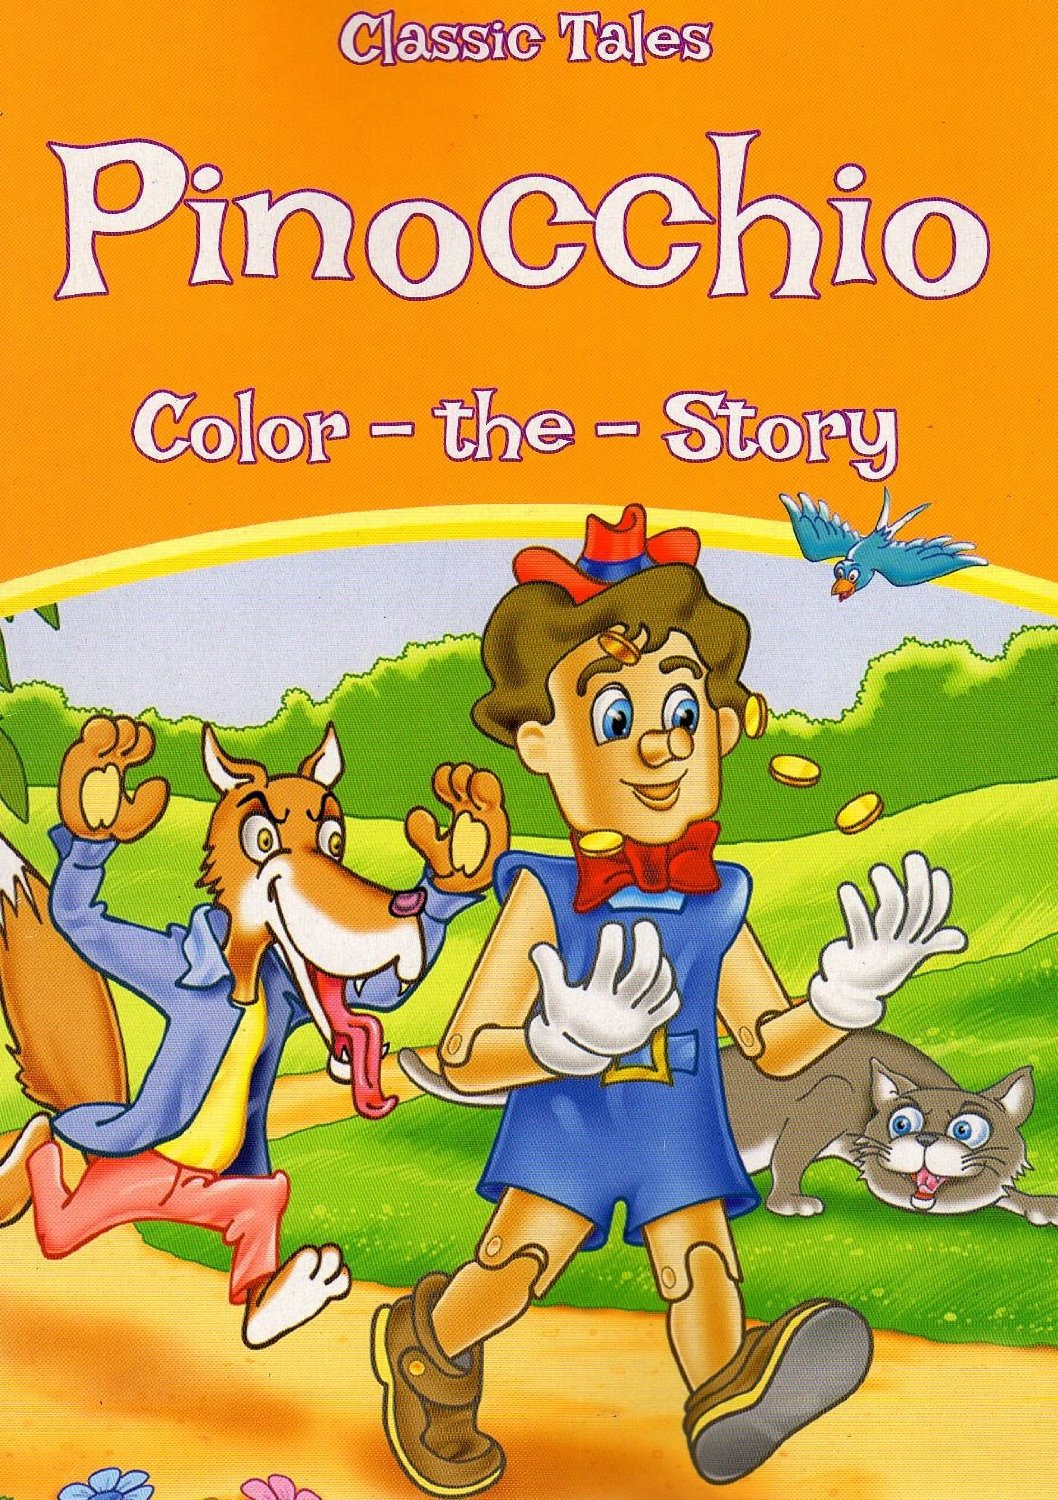 Classic Tales - Pinocchio - Color The Story - Coloring Book